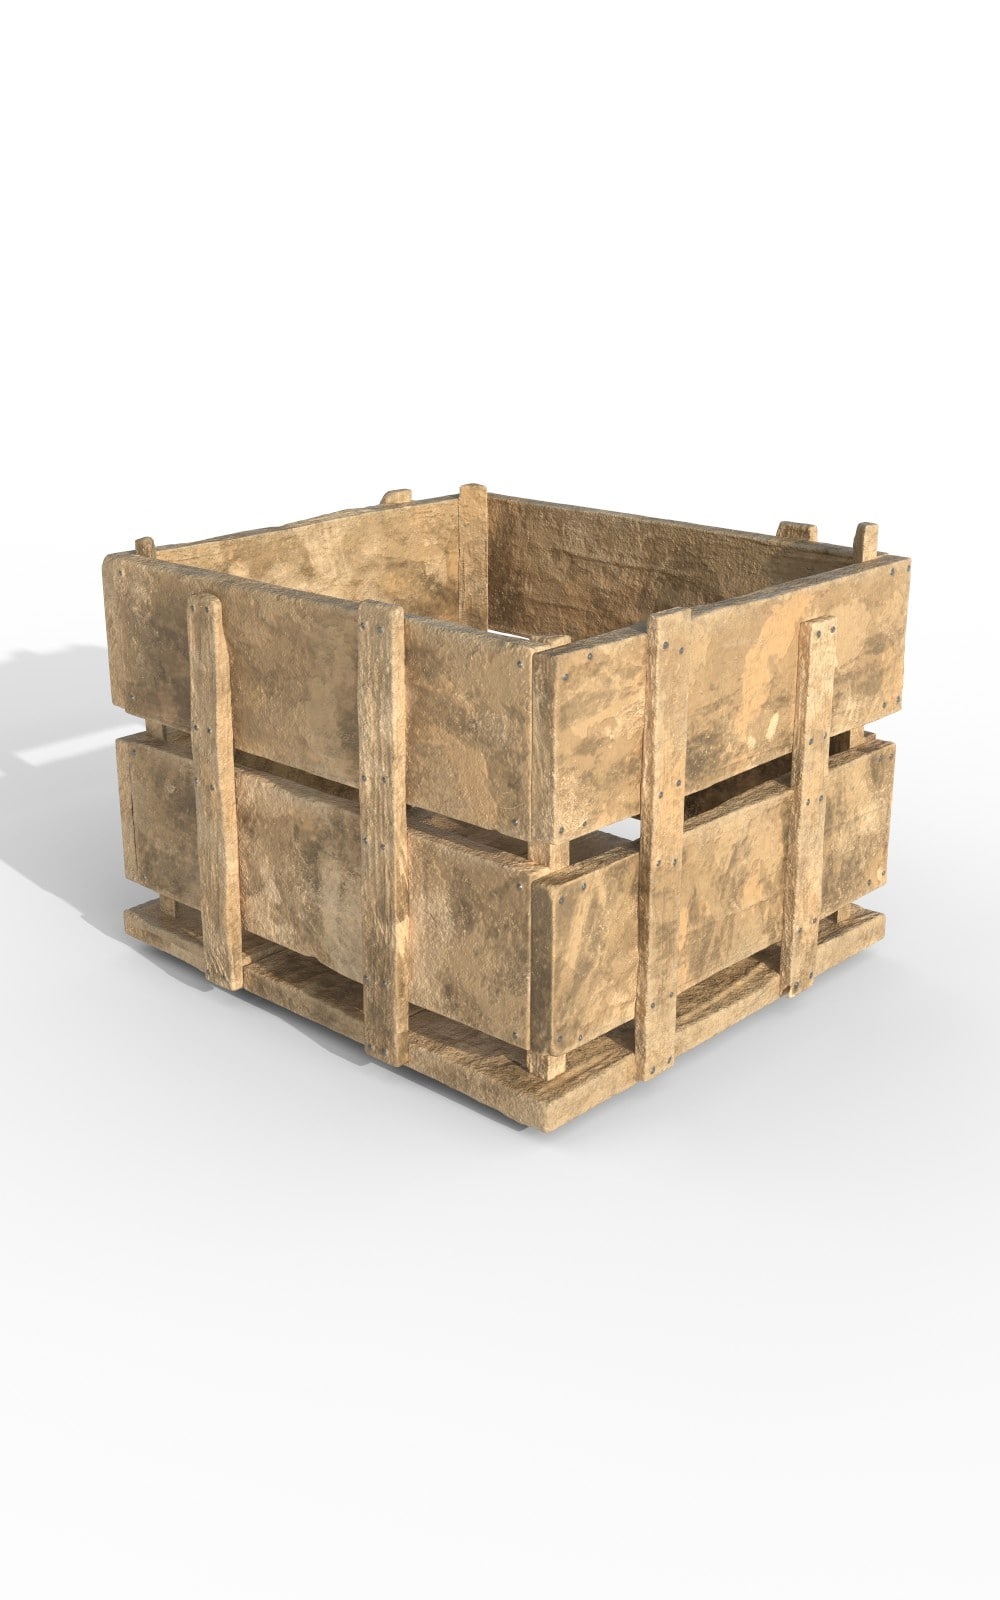 Wooden Case Storage Premium 3D Model - image 1